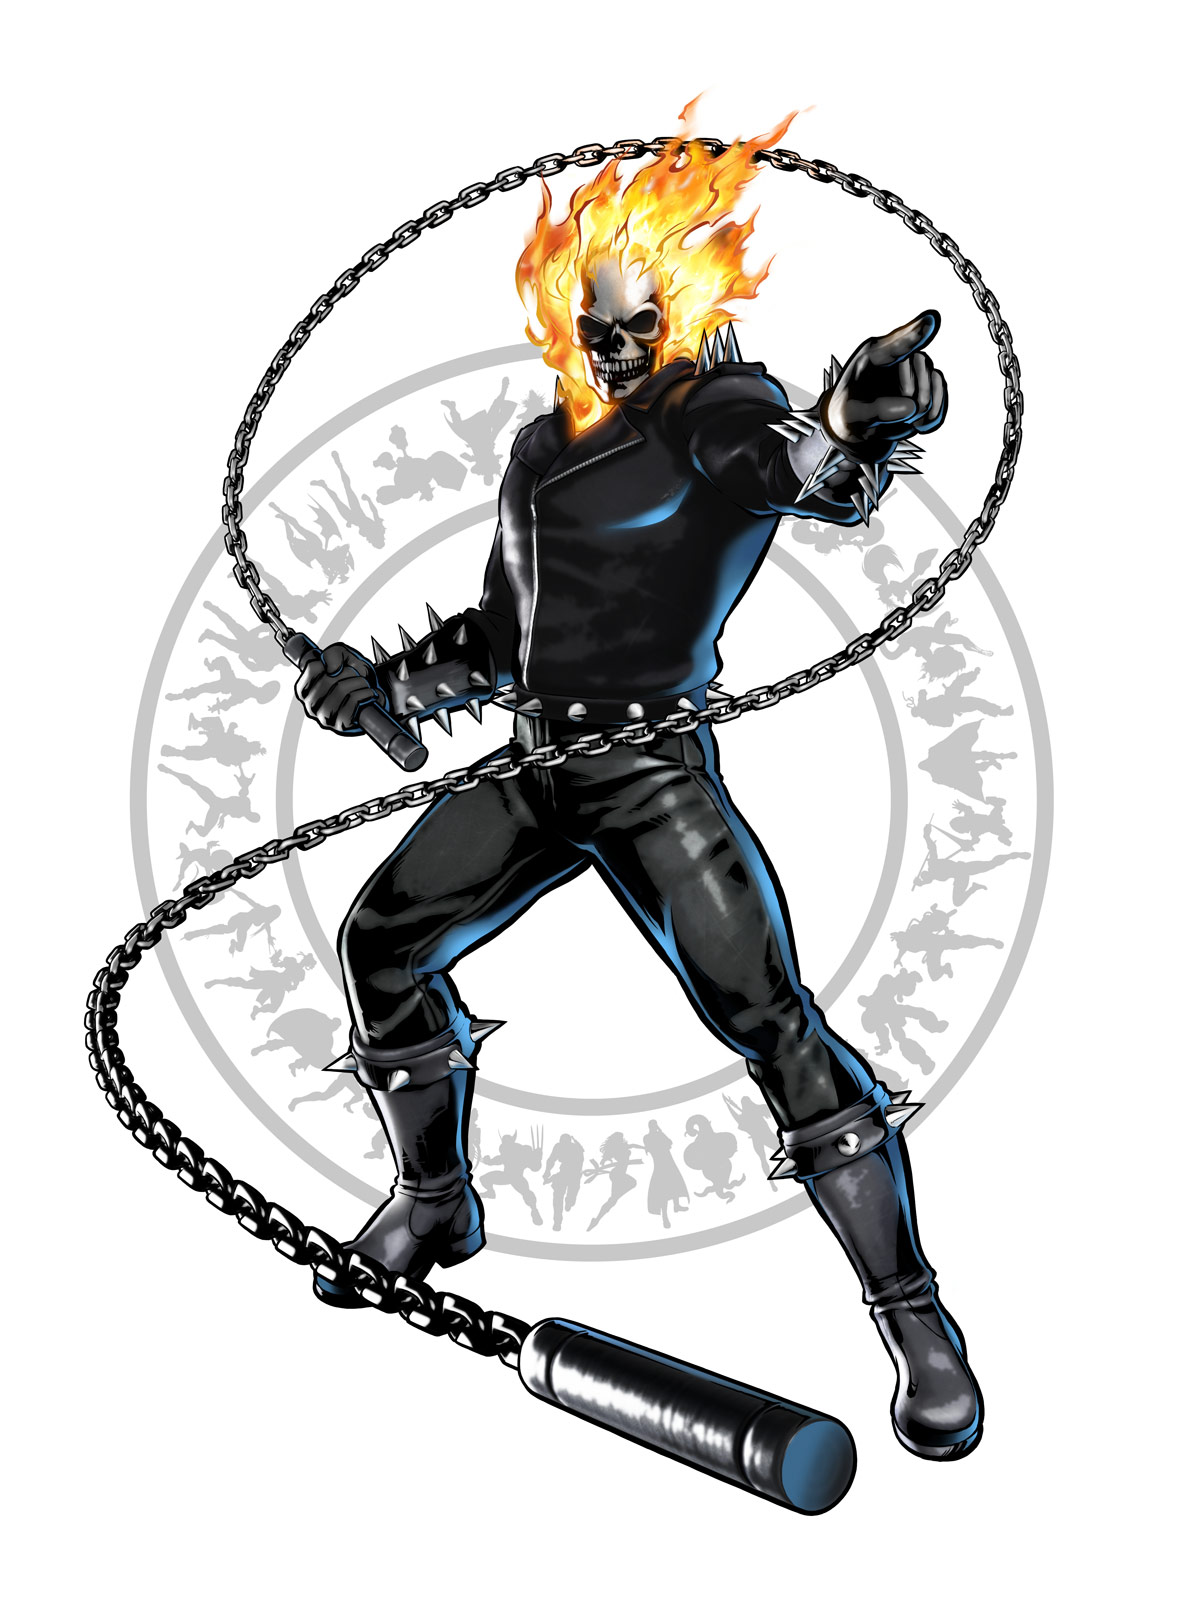 Ghost Rider's artwork for Ultimate Marvel vs. Capcom 3